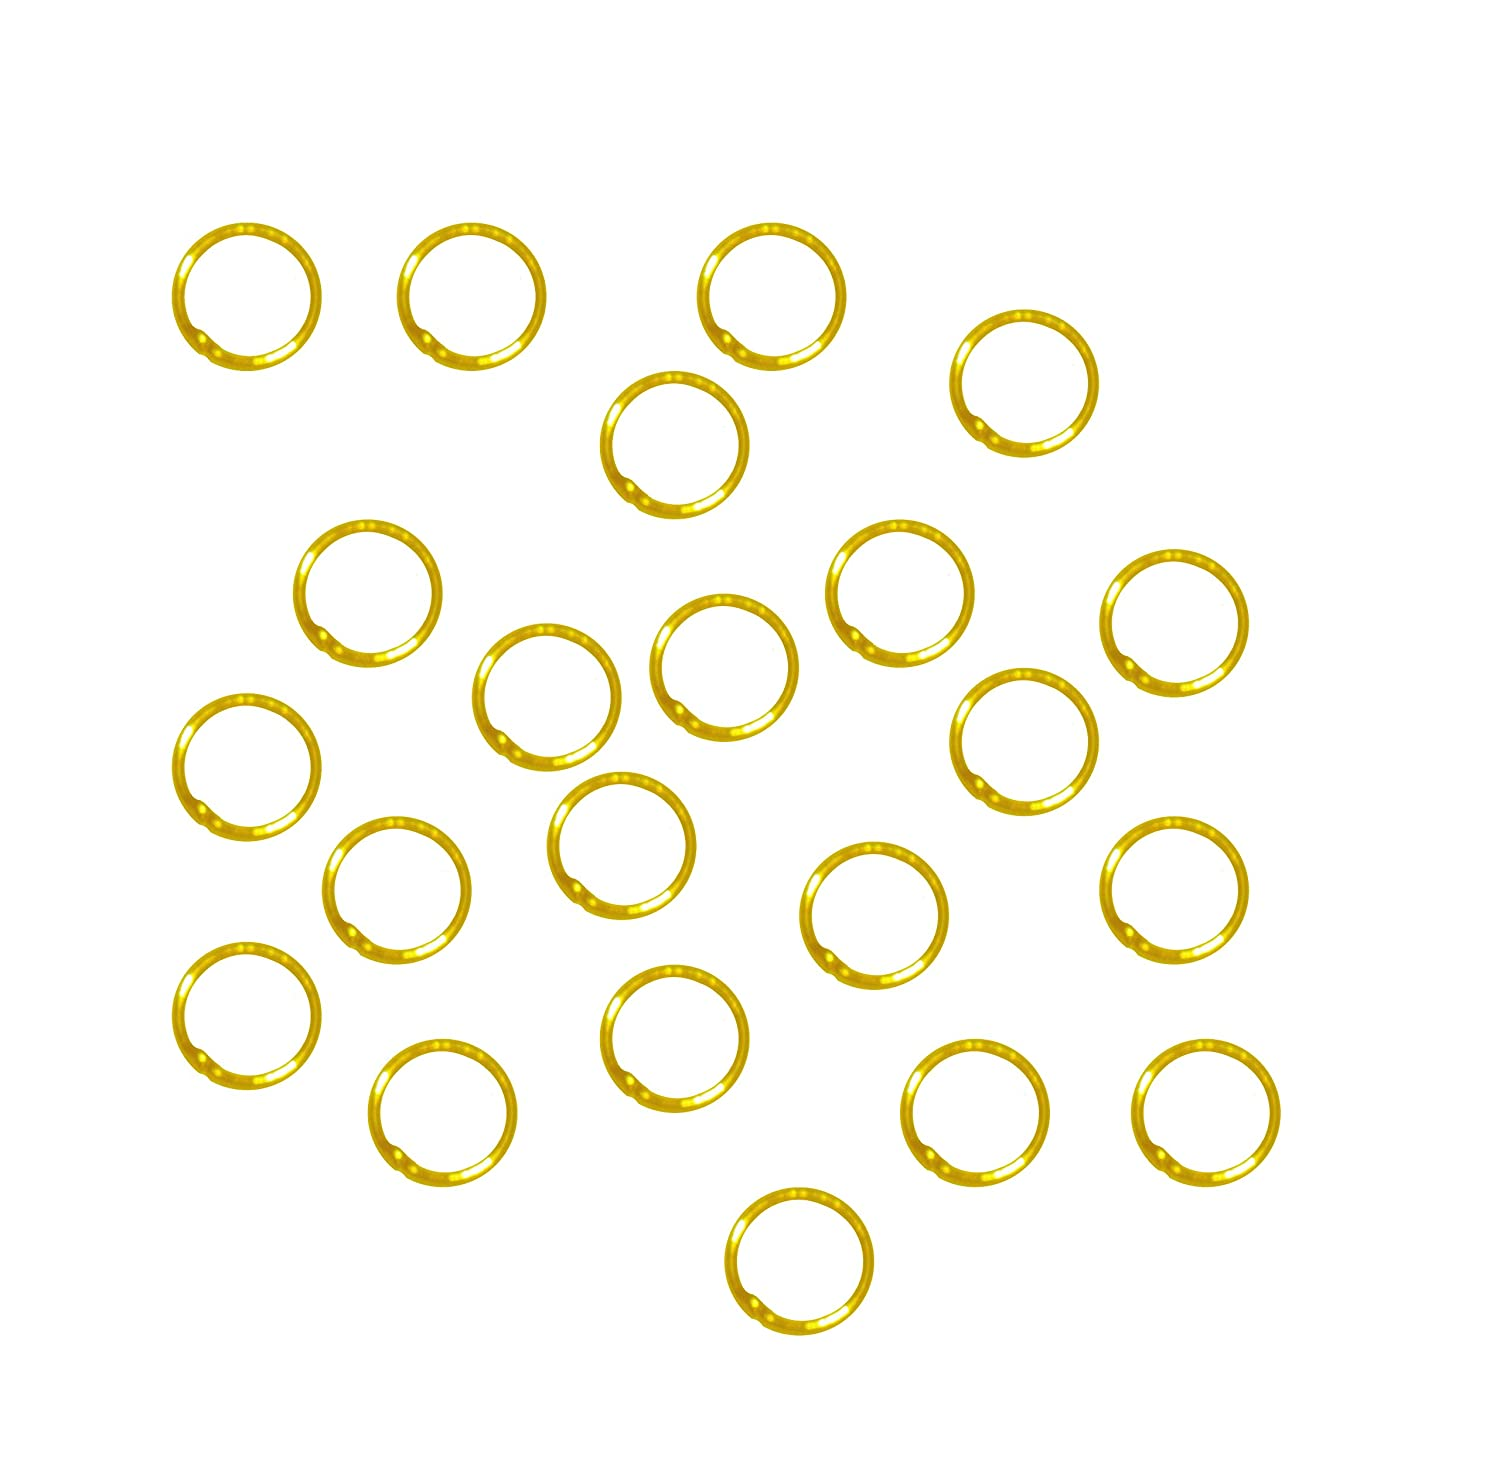 21 Gauge Rockin Beads Soldered Closed 100 Jump Rings 8mm Round Gold Plated